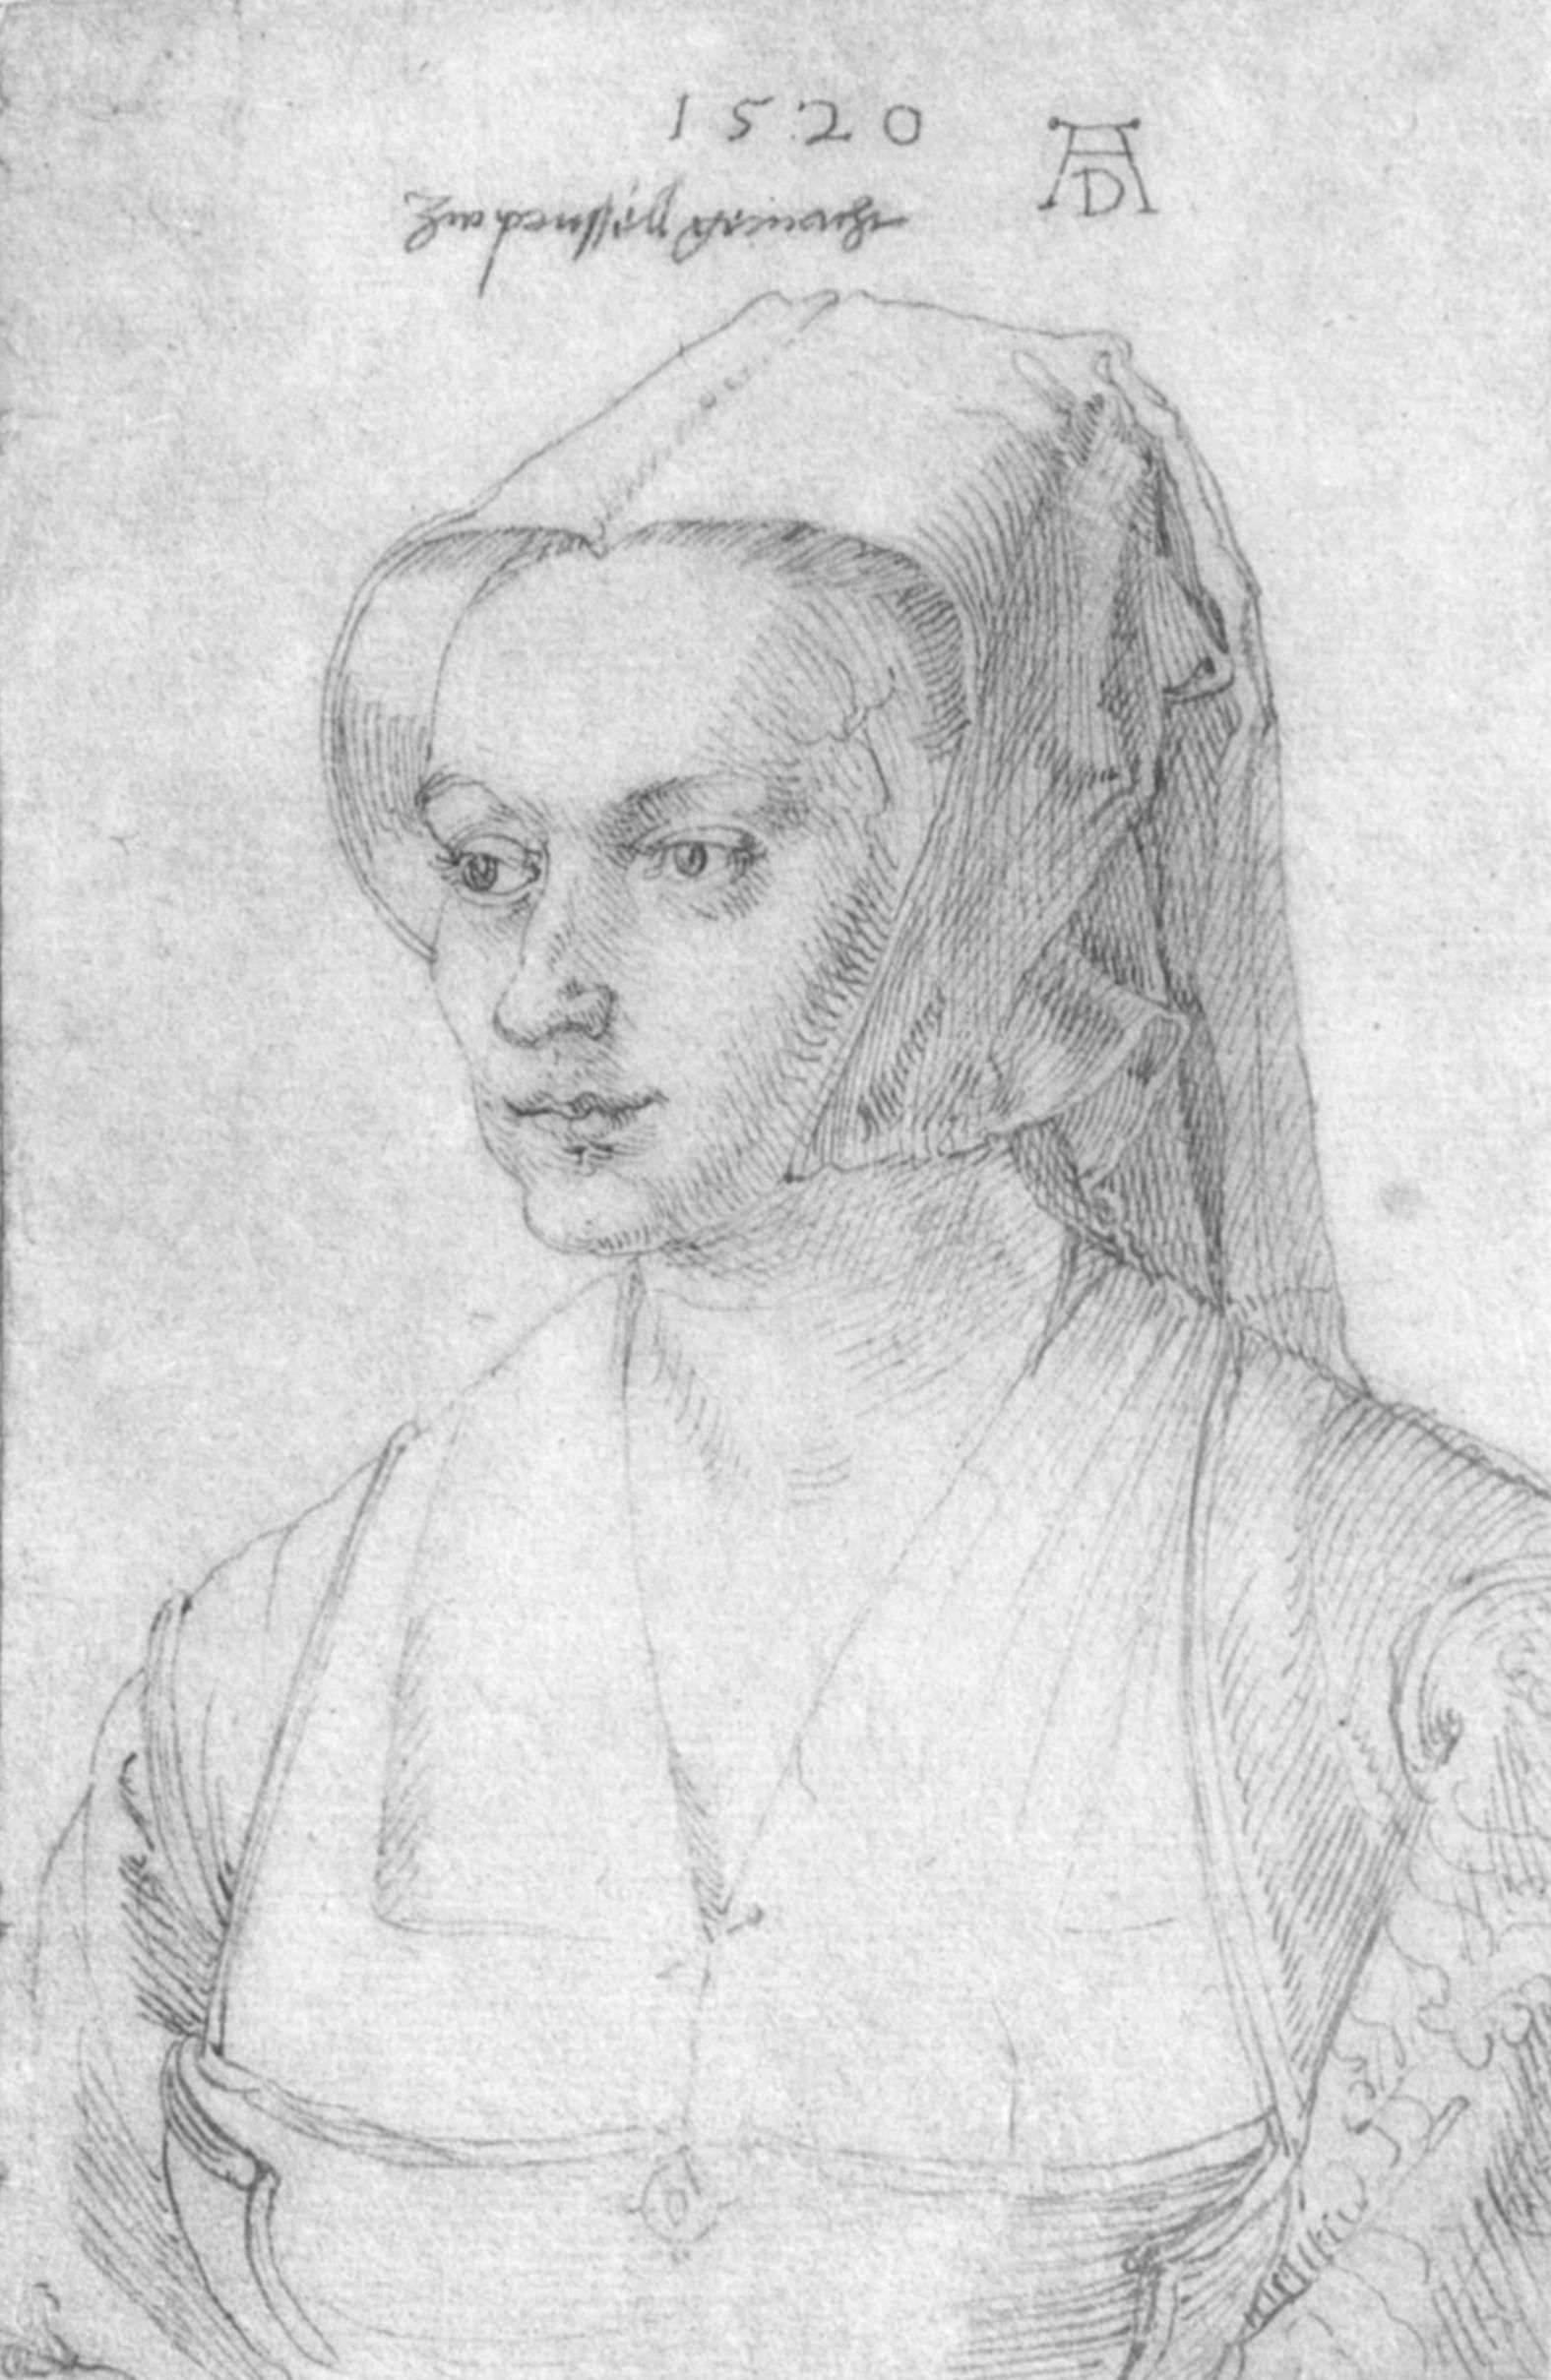 https://uploads0.wikiart.org/images/albrecht-durer/portrait-of-a-woman-from-brussels.jpg